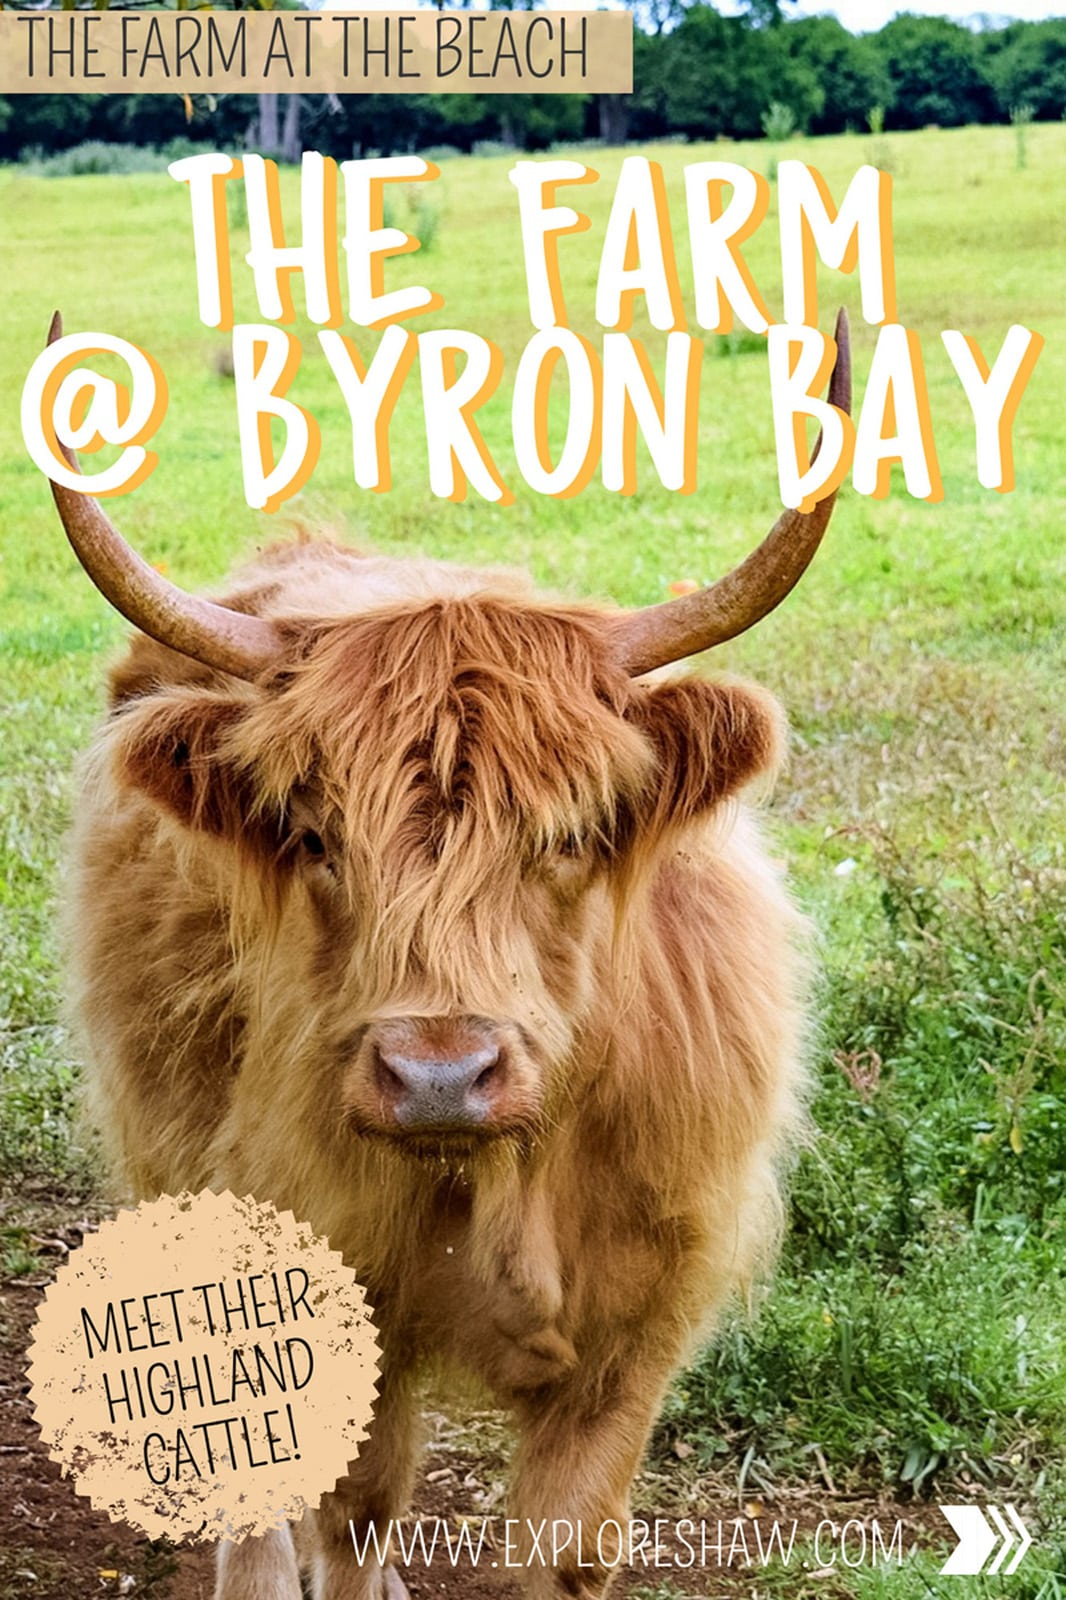 For a more unique in Byron, away from the surf beaches, you need to check out The Farm at Byron Bay - the perfect place to see the Highland Cattle up close and personal and a very hipster cafe.